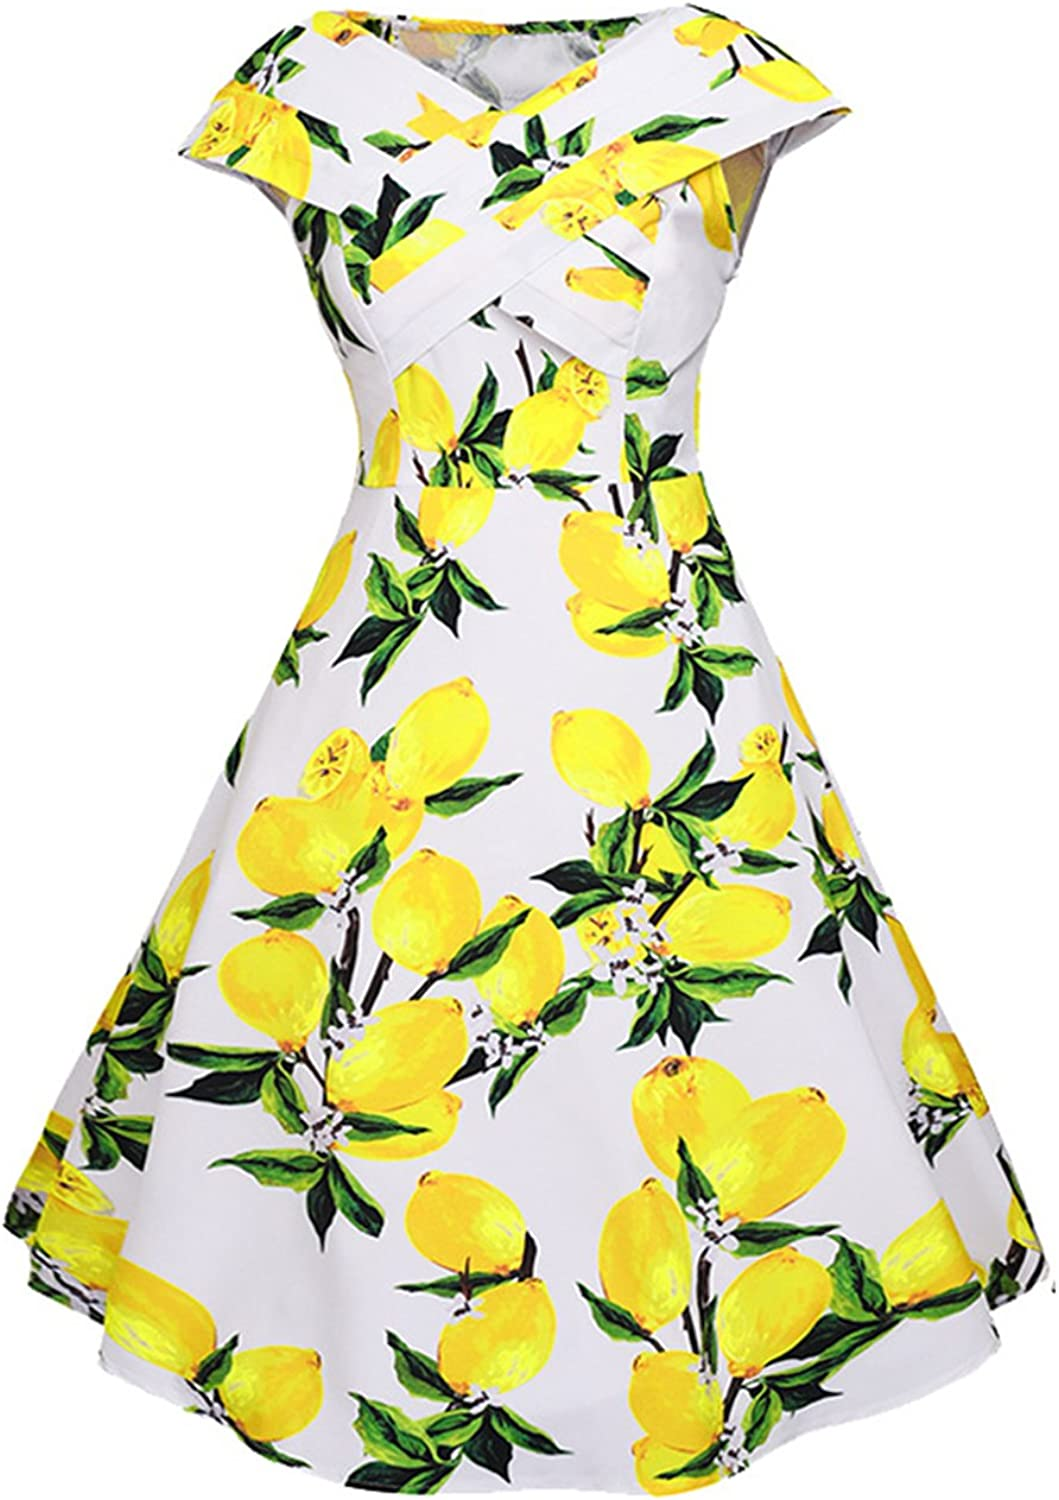 Ahlsen Women's 1950's Vintage Cap Sleeve Pleated Floral Easter Party Dresses